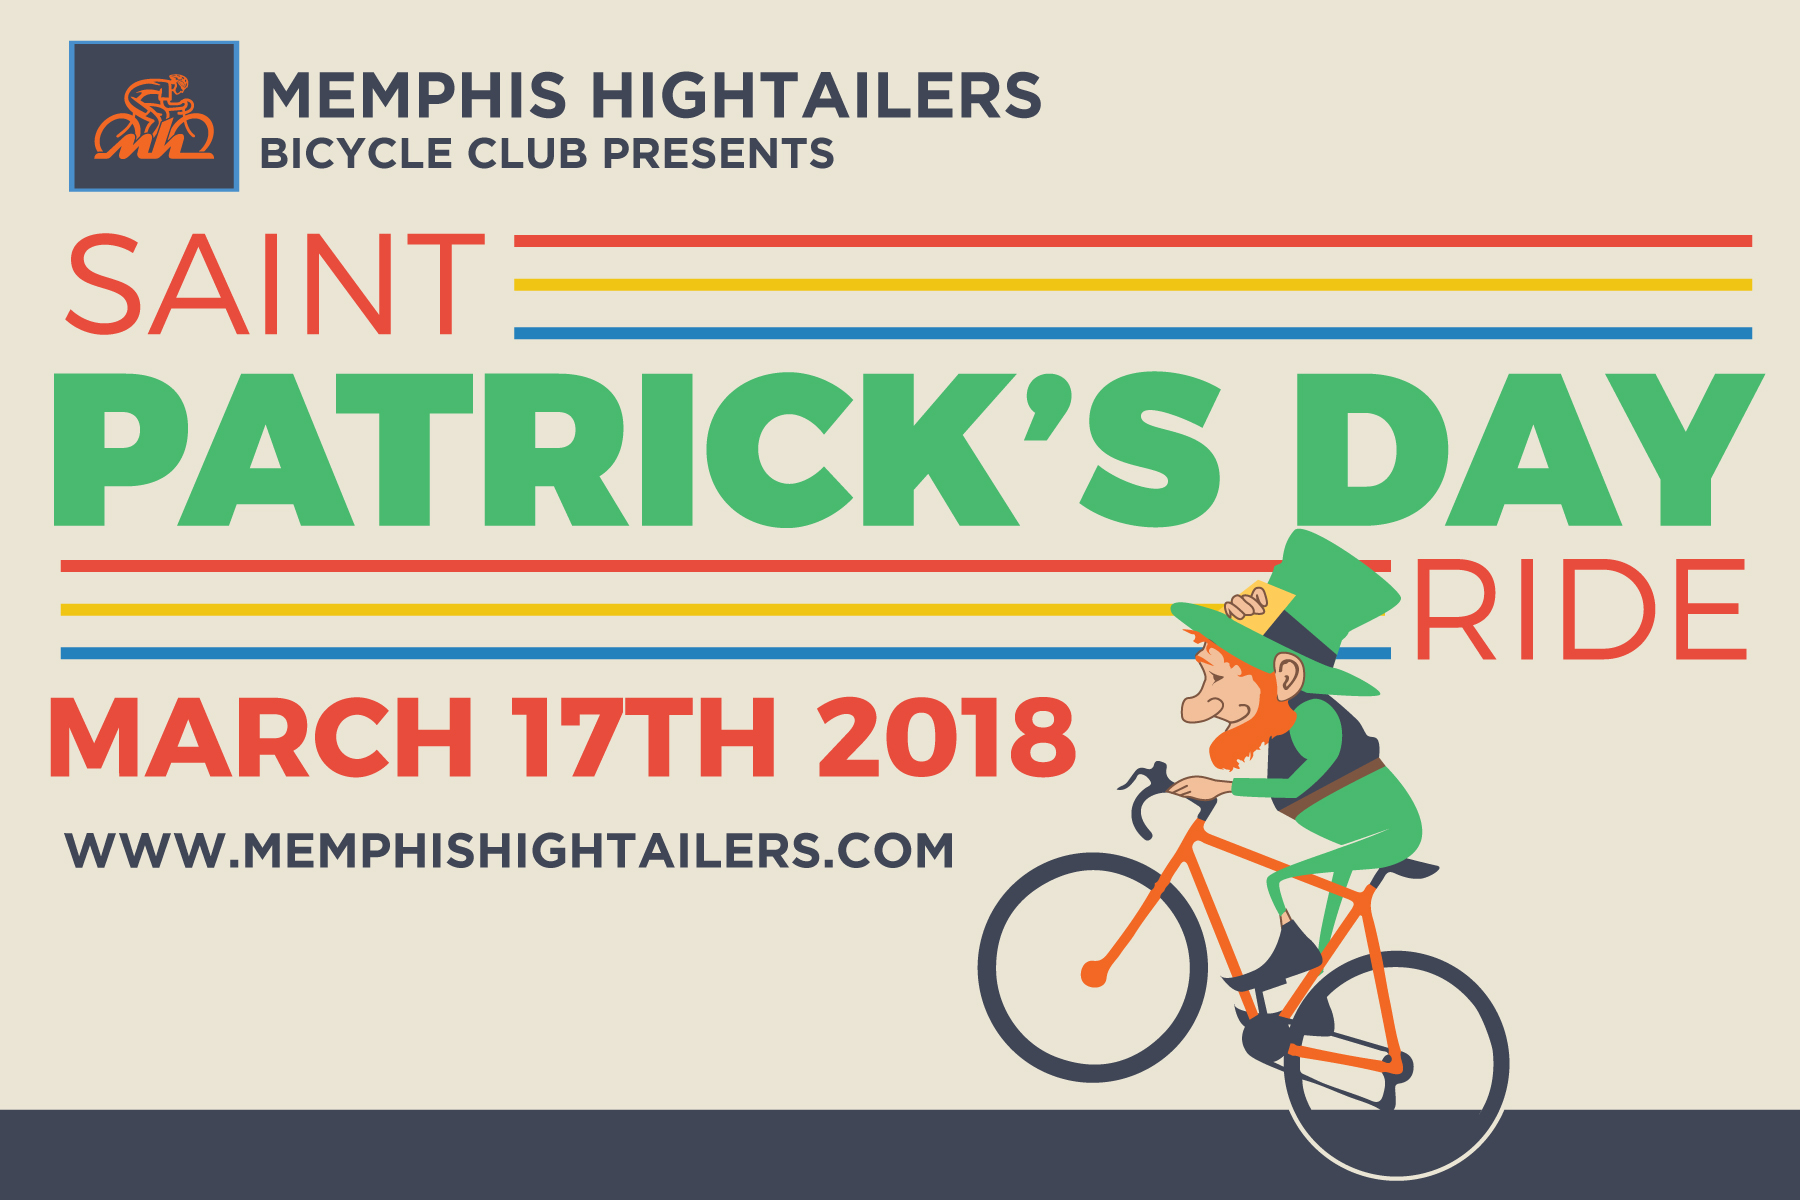 St Patricks Day Ride - Events - Memphis Hightailers Bicycle Club